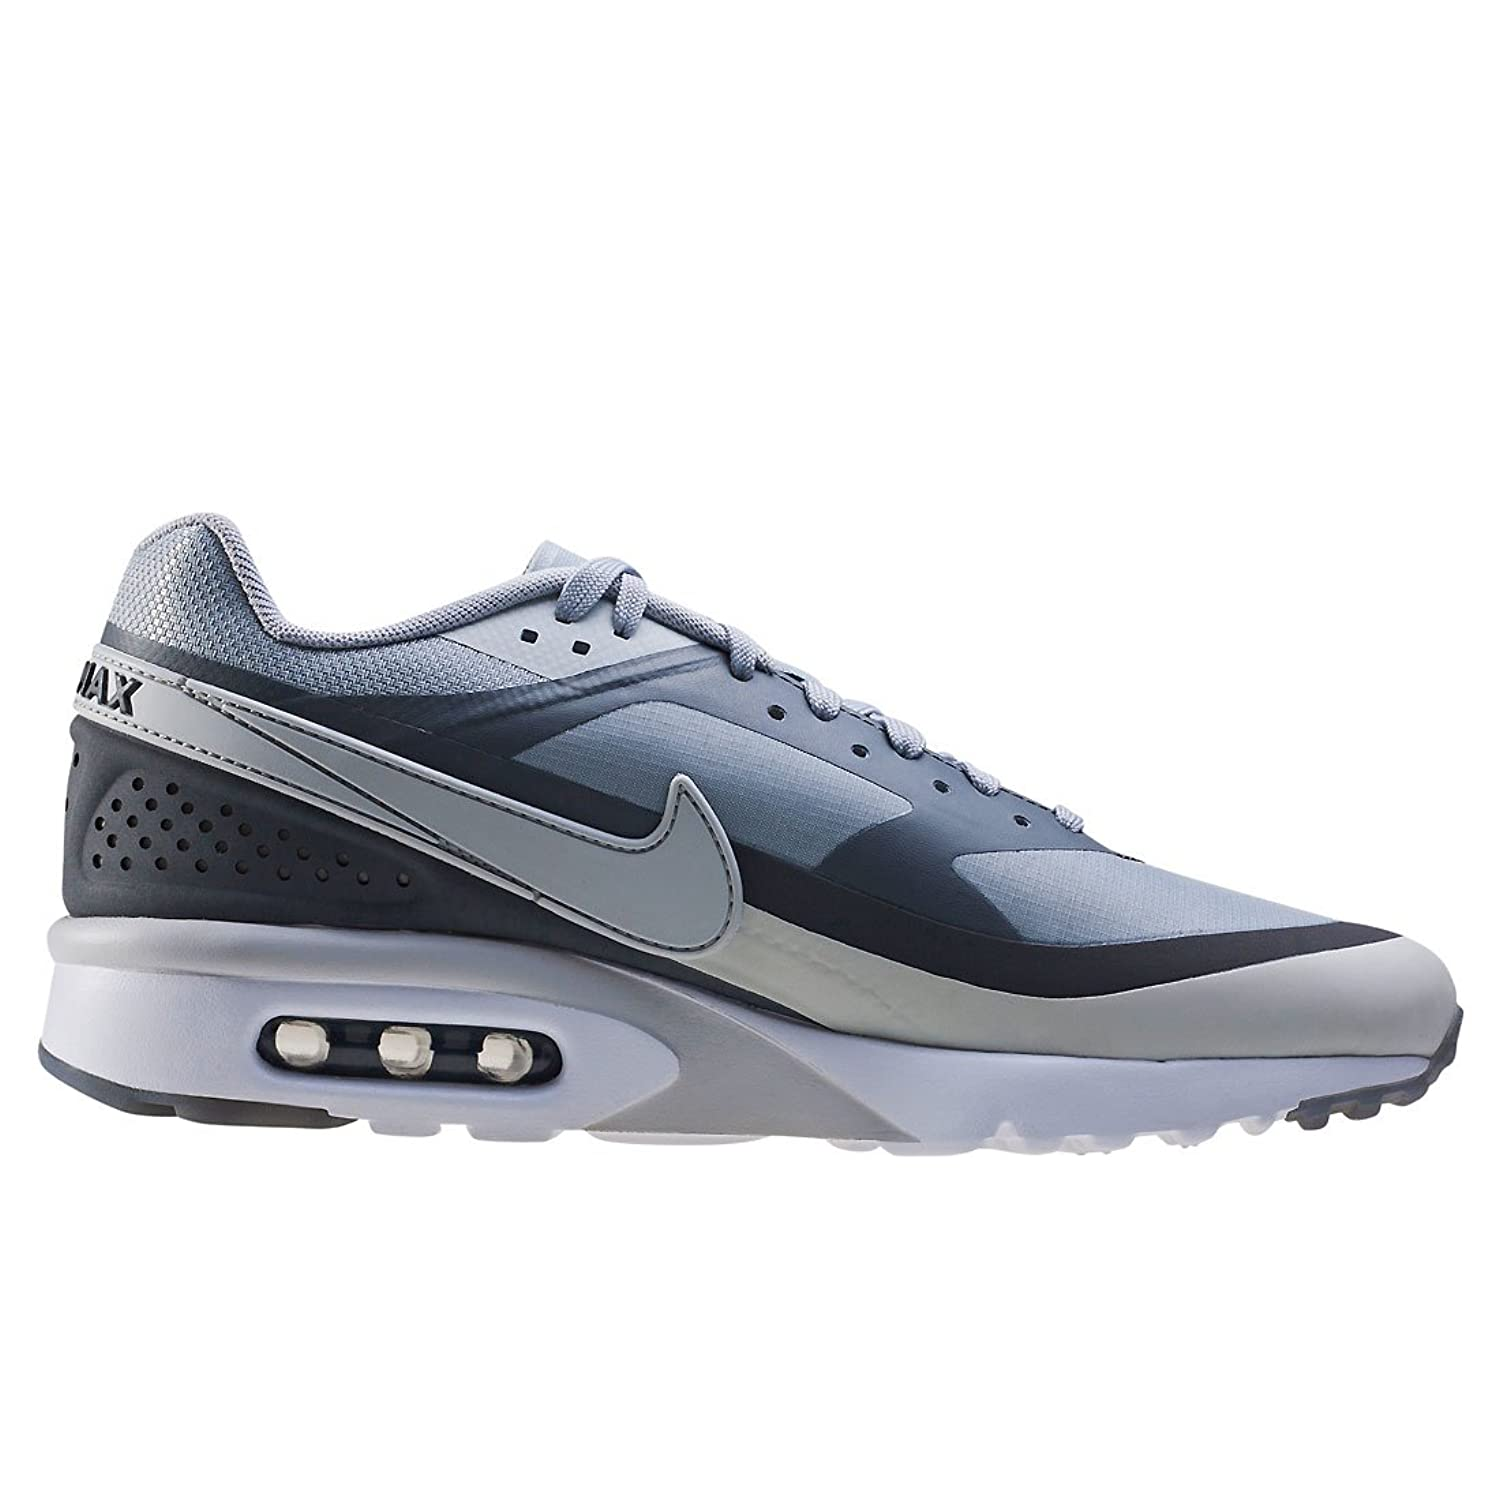 55f0350a5d ... cheapest 41 nike air max bw ultra 819475006 amazon shoes 2bb6d e5641